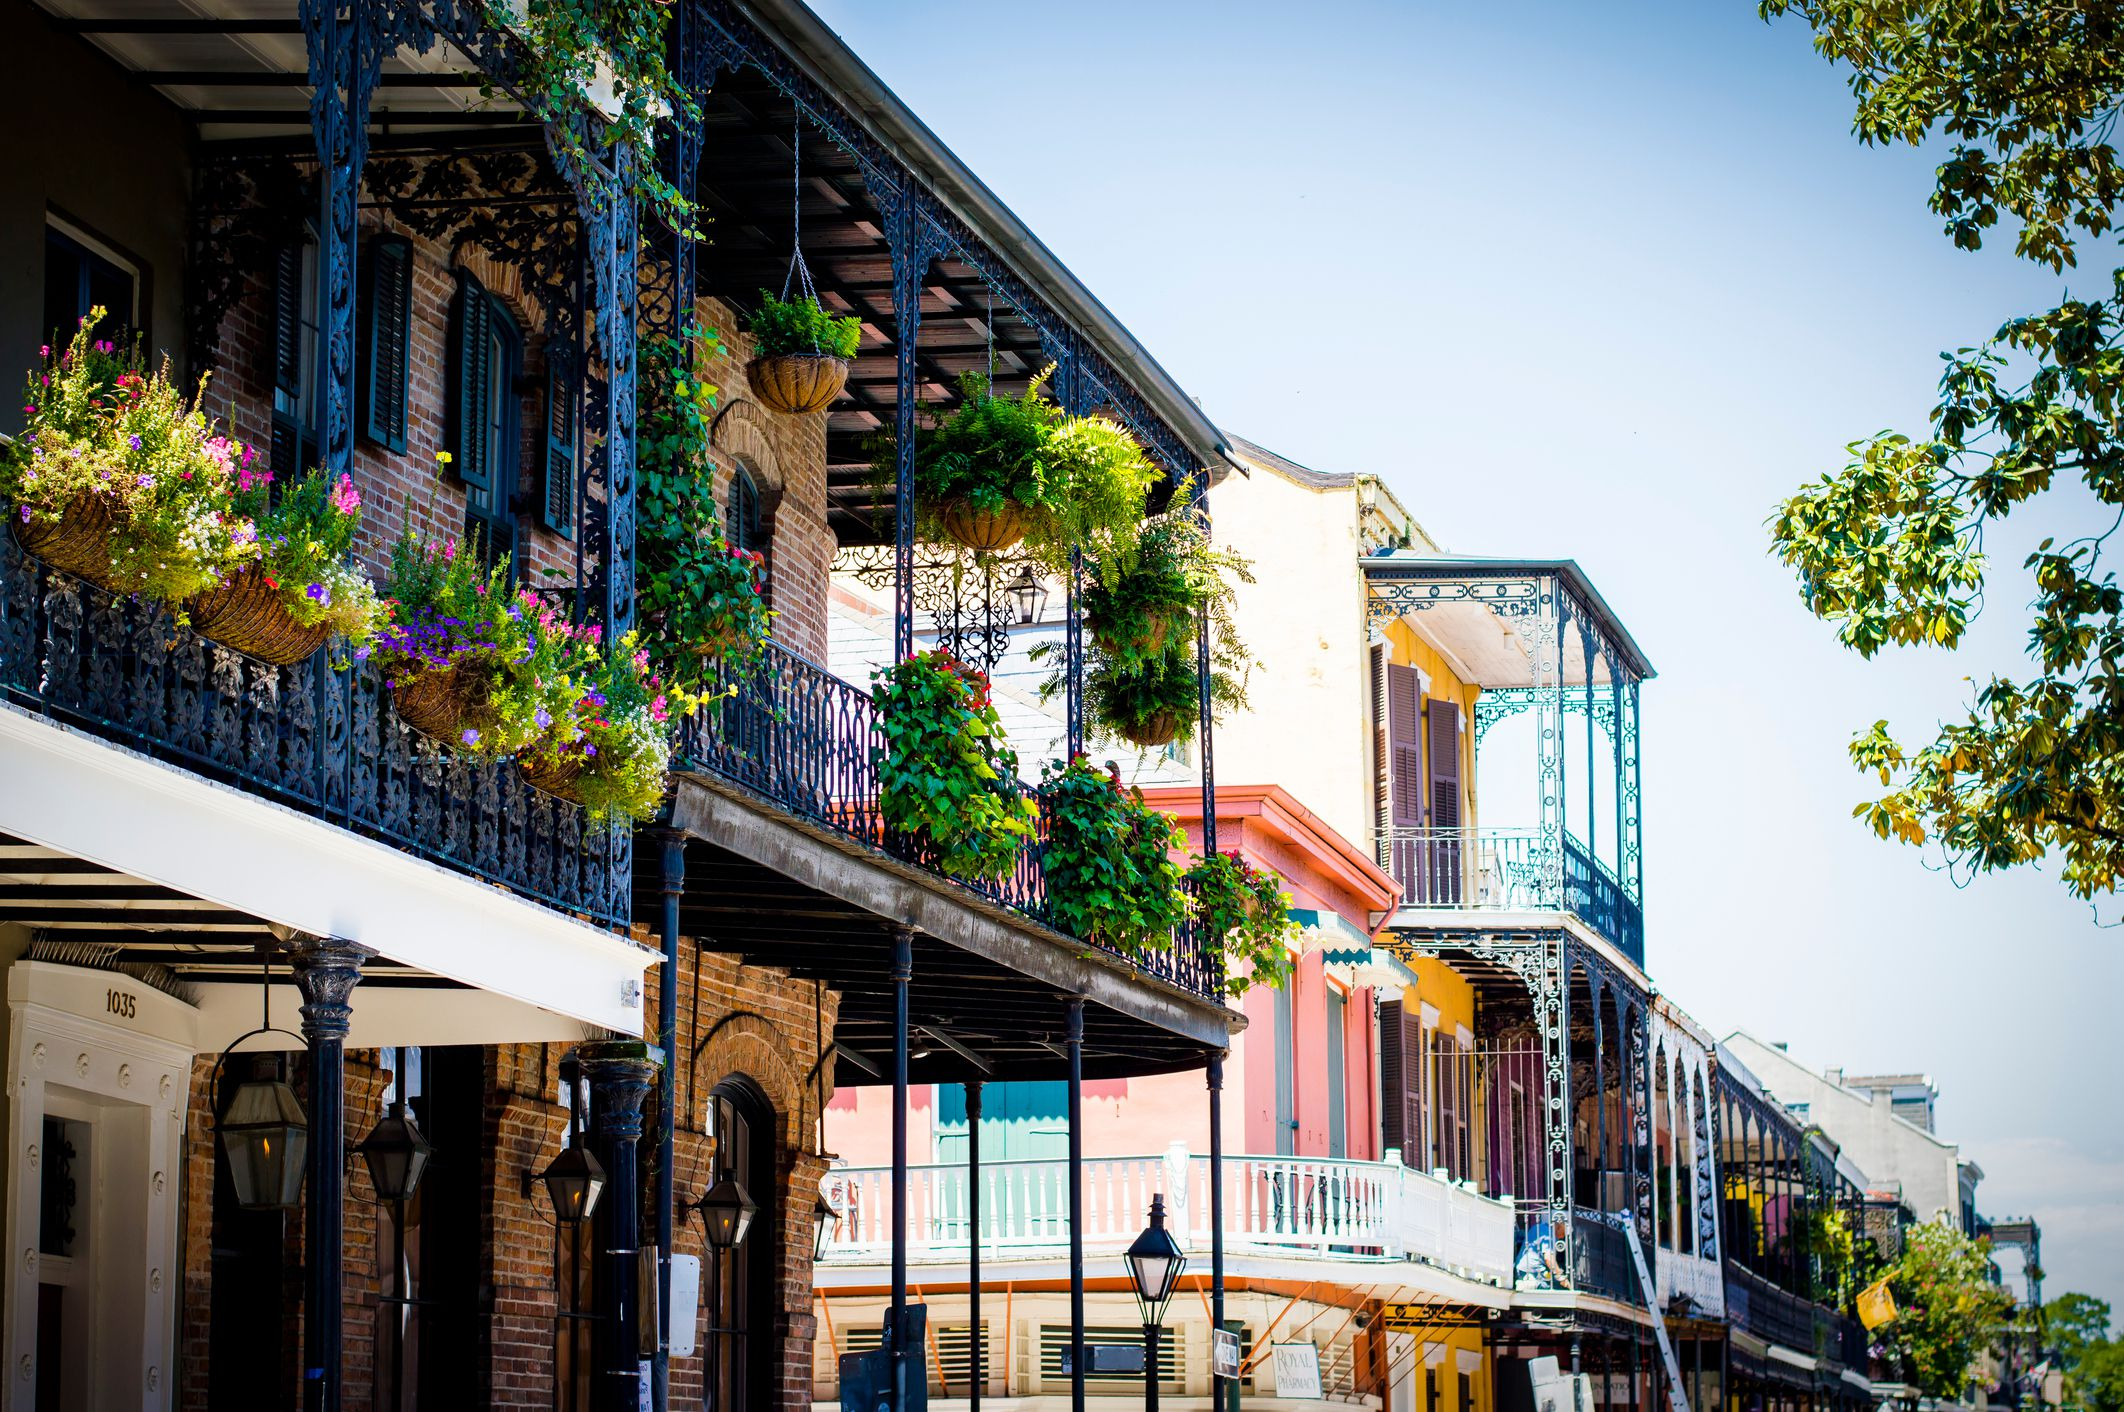 Potted plants in balcony of building at French Quarter